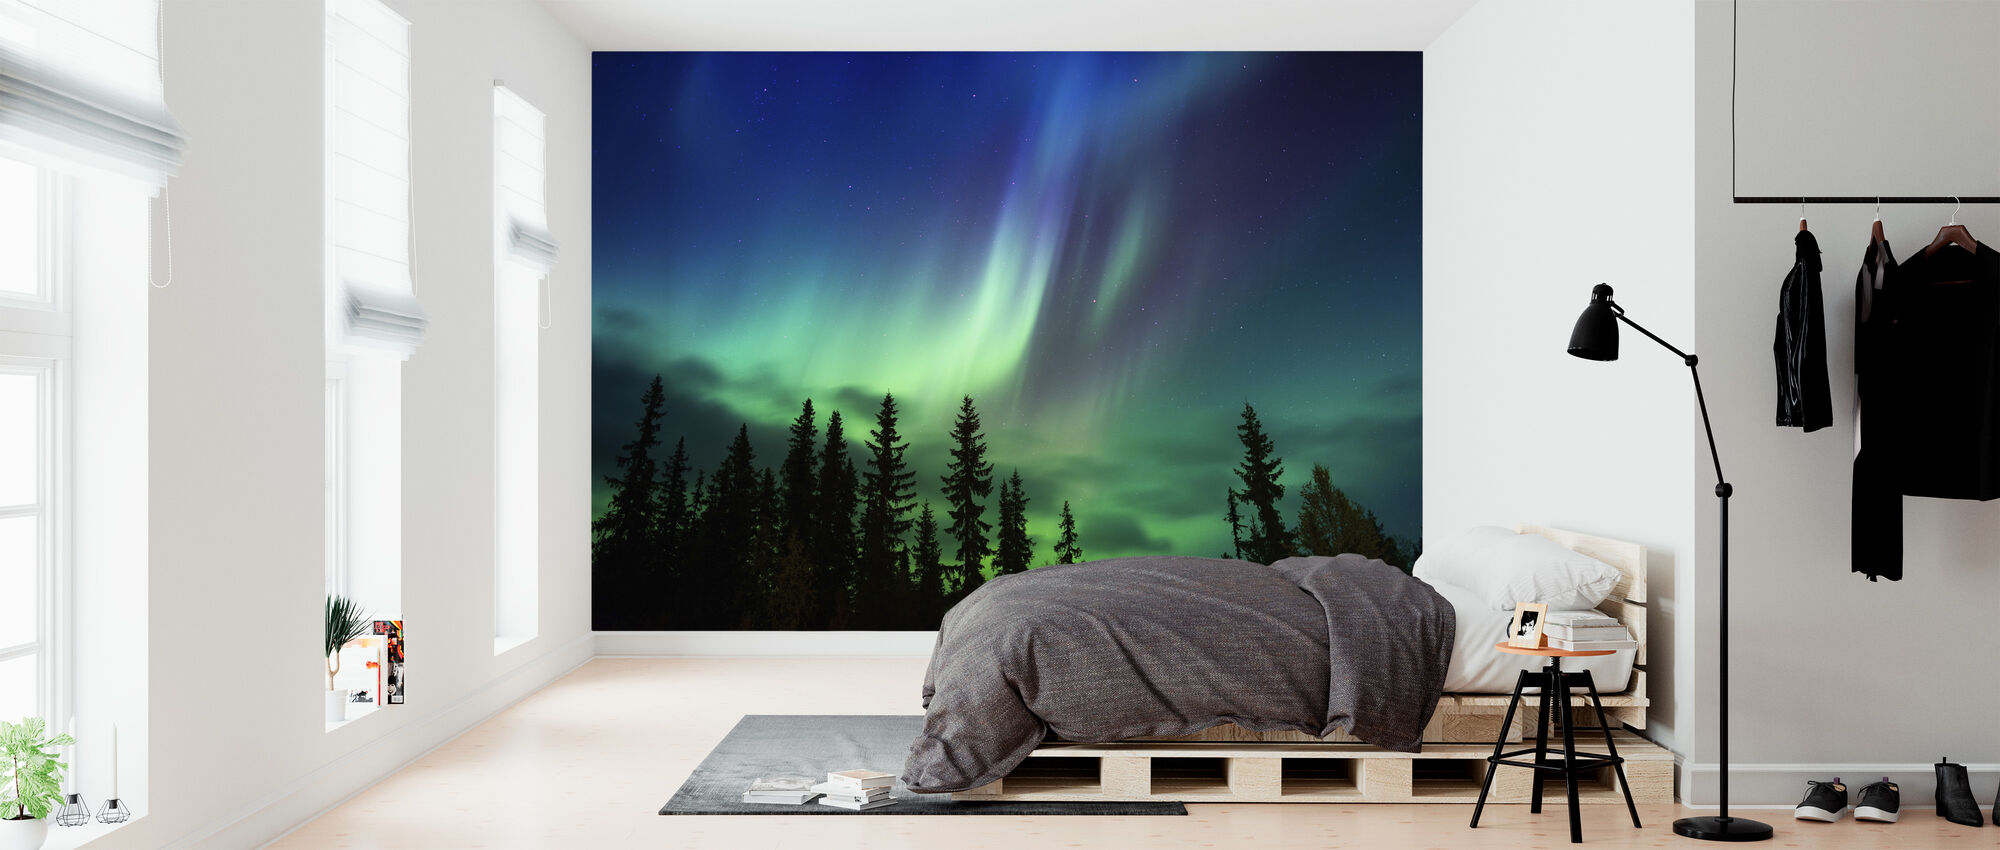 Enlightenment of Night - Wallpaper - Bedroom